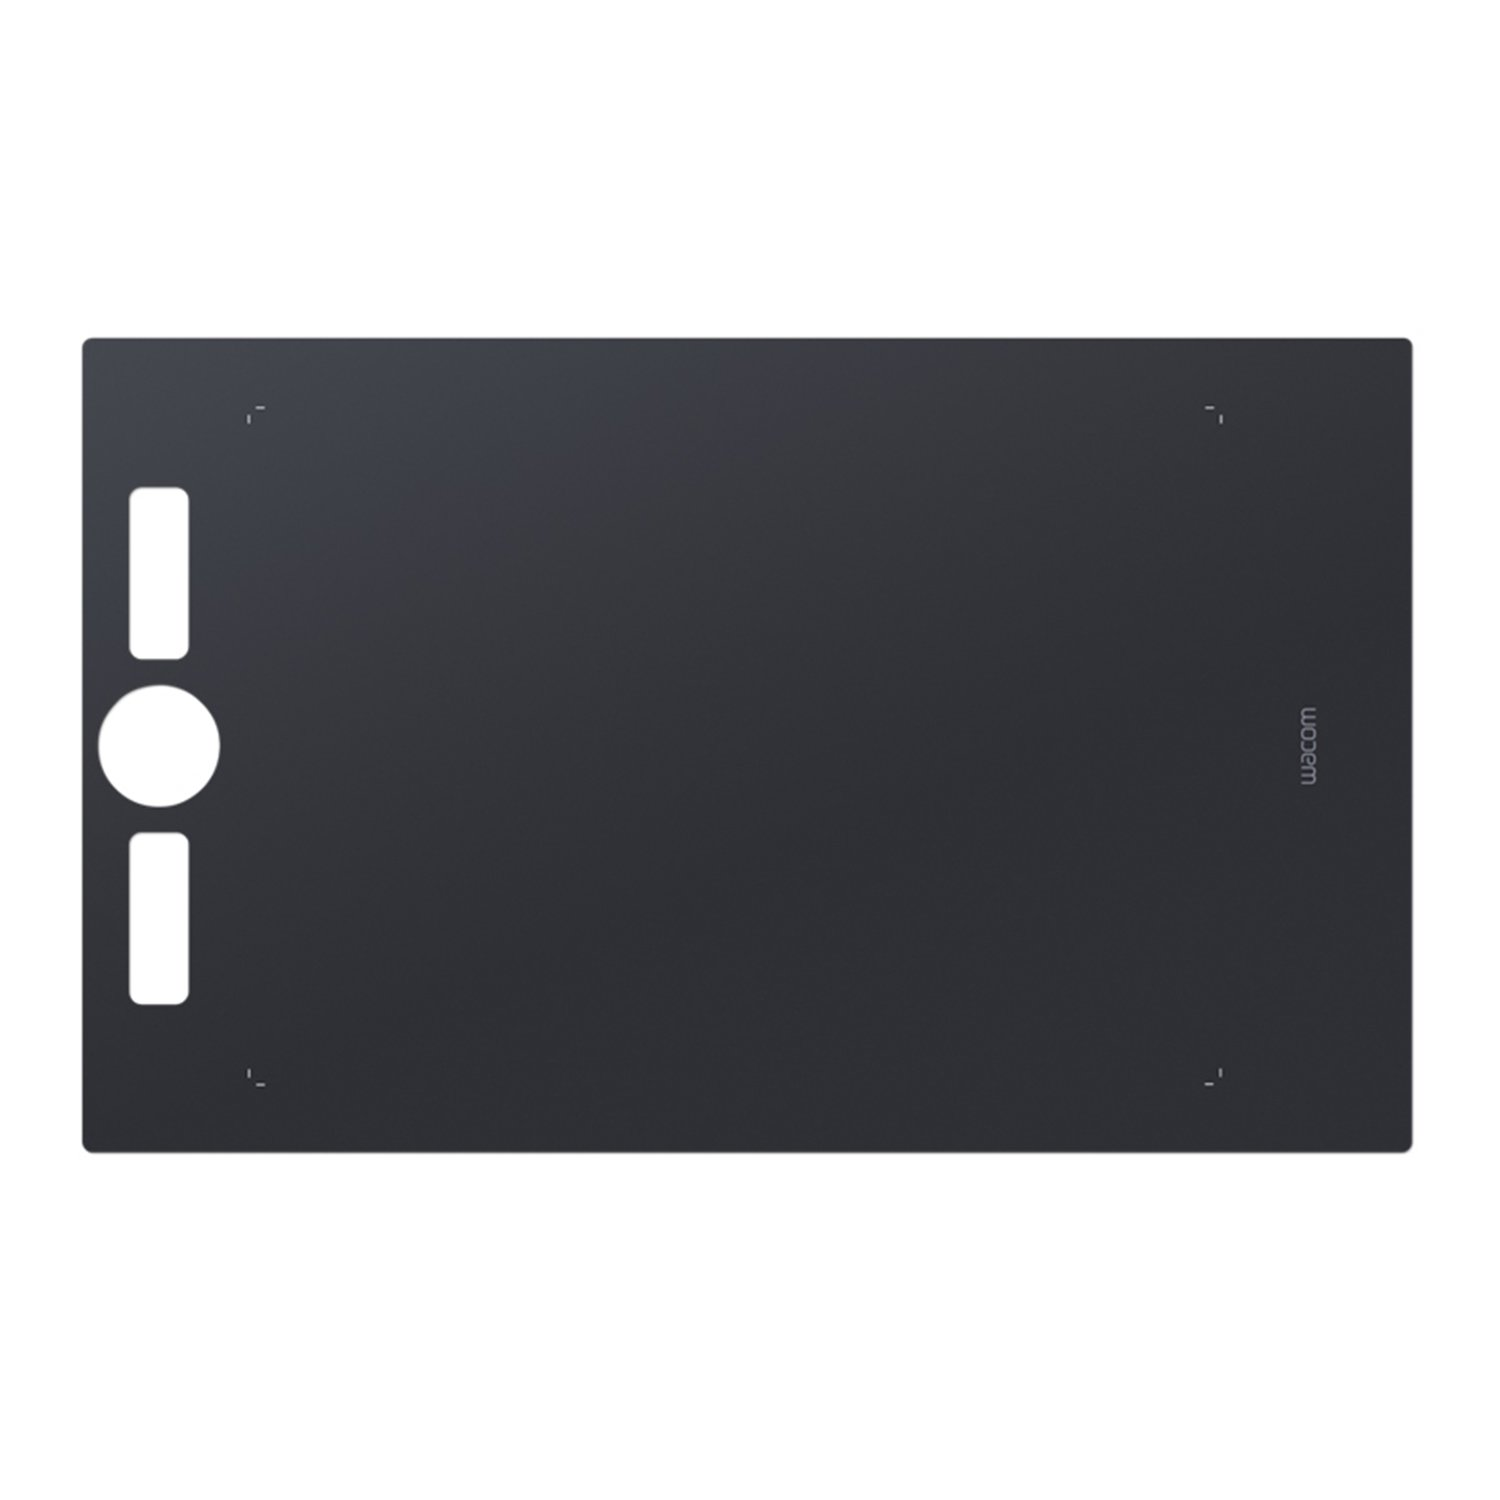 Wacom Intuos Pro Overlay Sheet L Smooth ACK-122-311 (PRE ORDER)